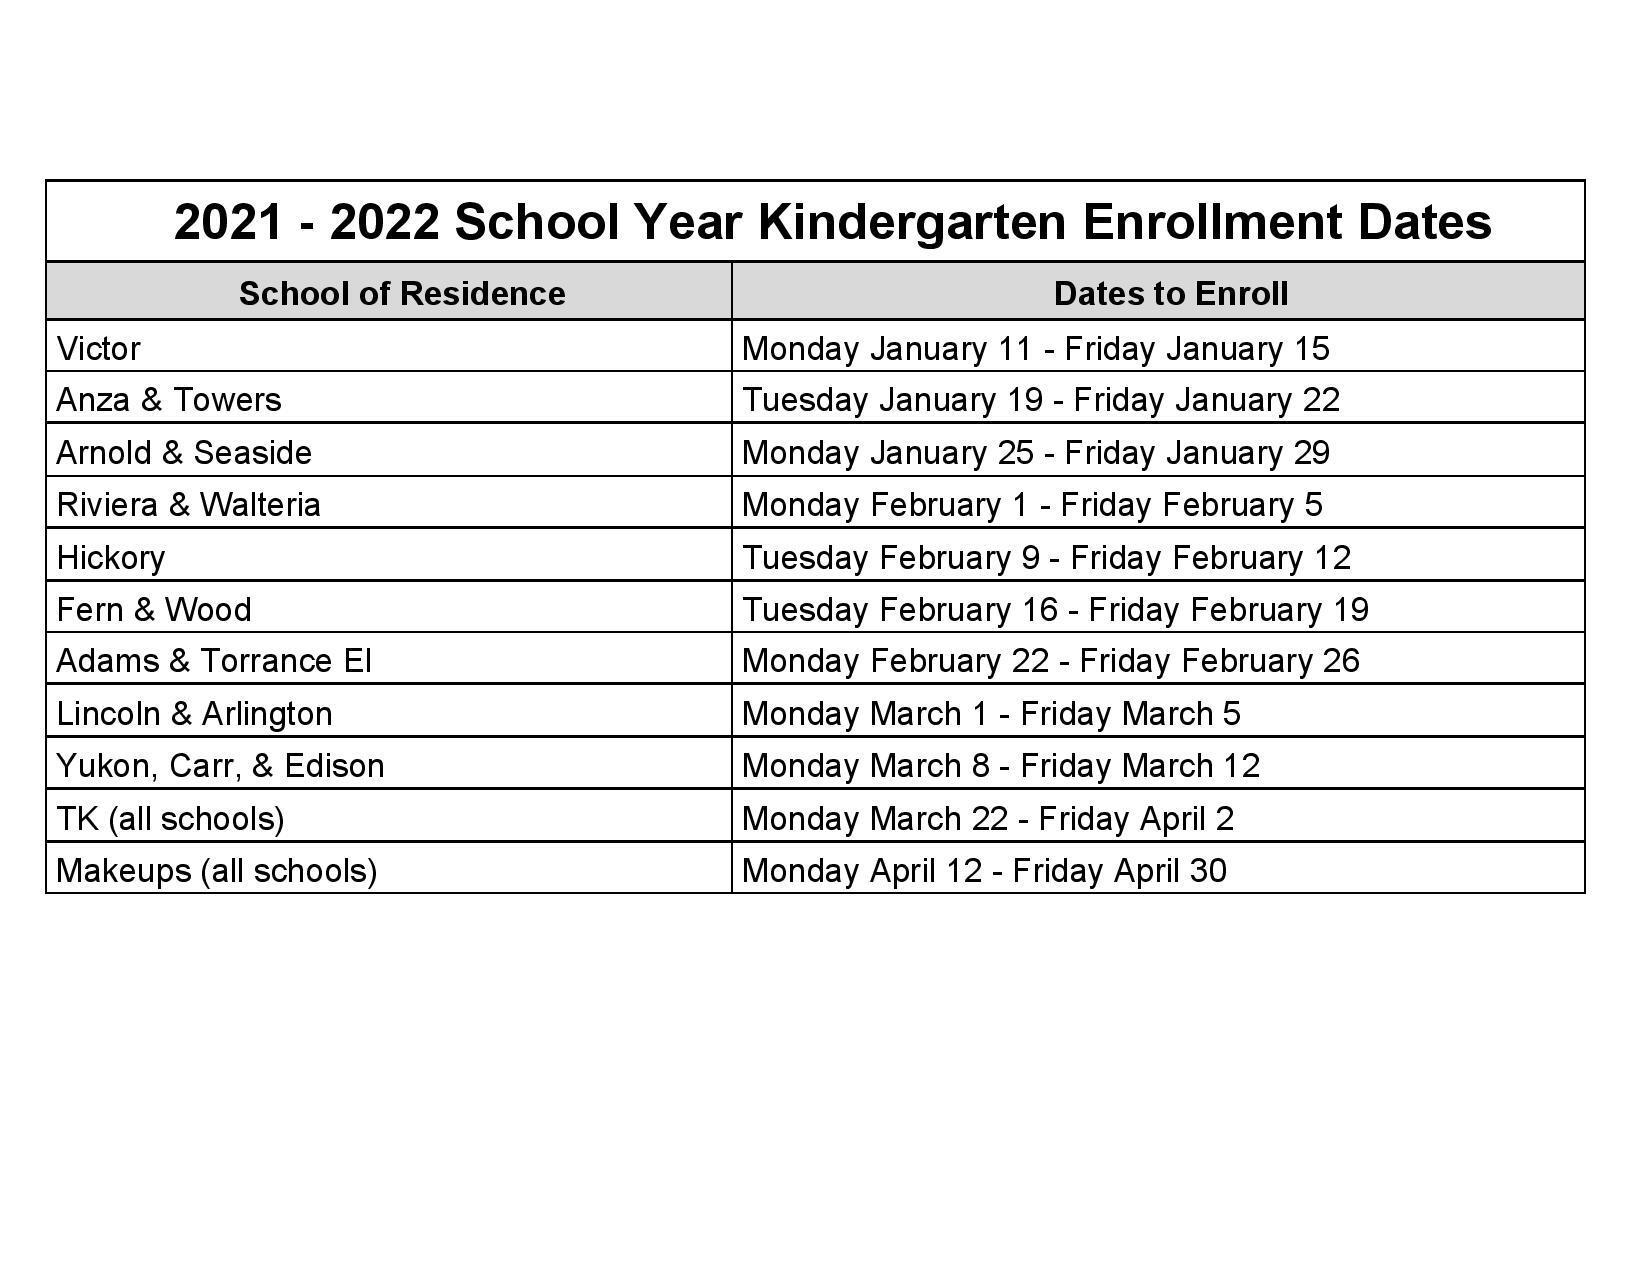 2021-2022 School Year Kindergarten Enrollment Dates